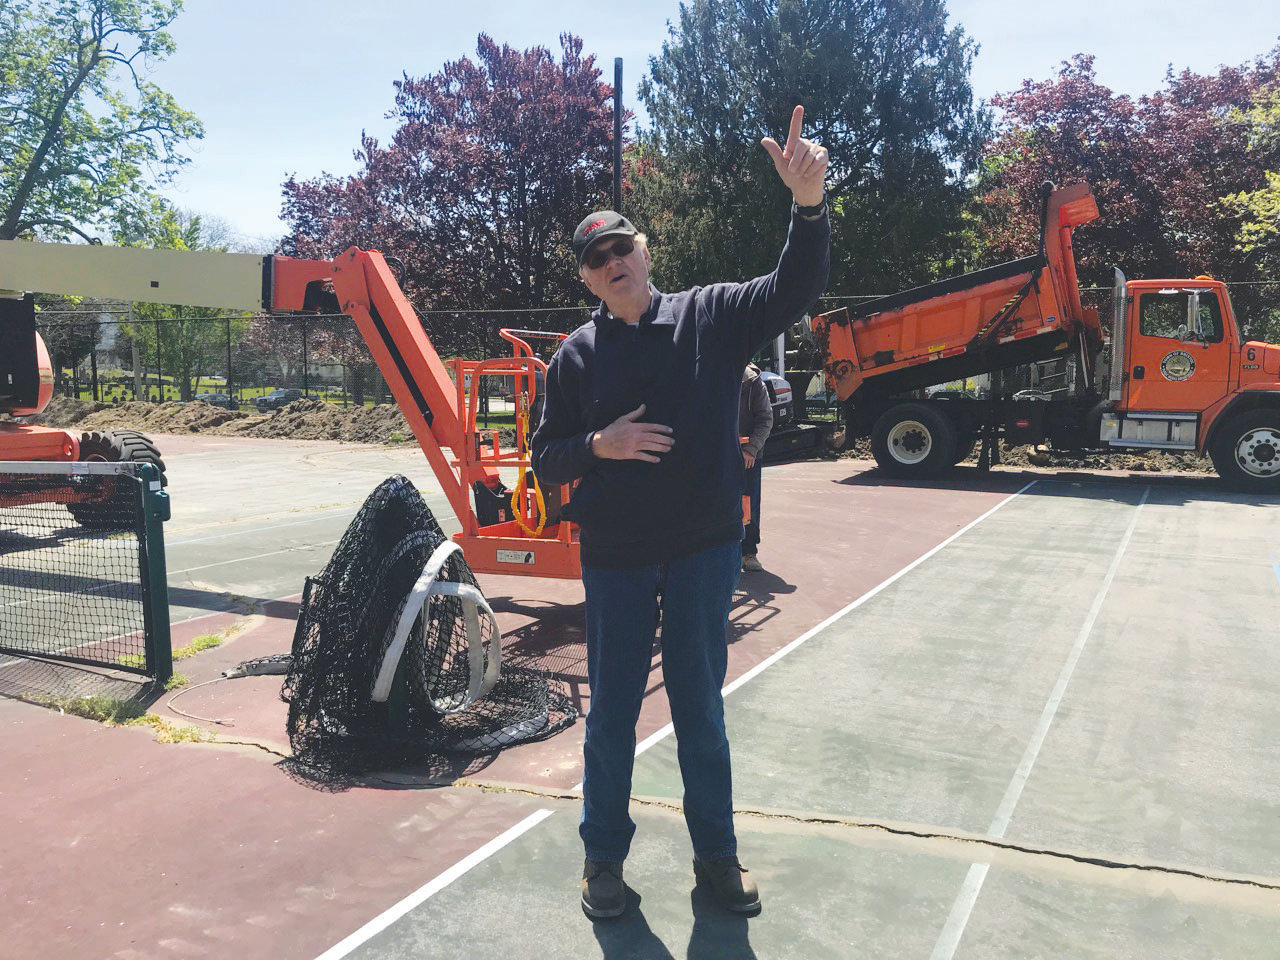 Bill VanVoast, Bristol's on-call electrician, is overseeing the installation of new electrical conduits that will illuminate the tennis courts on the Town Common.